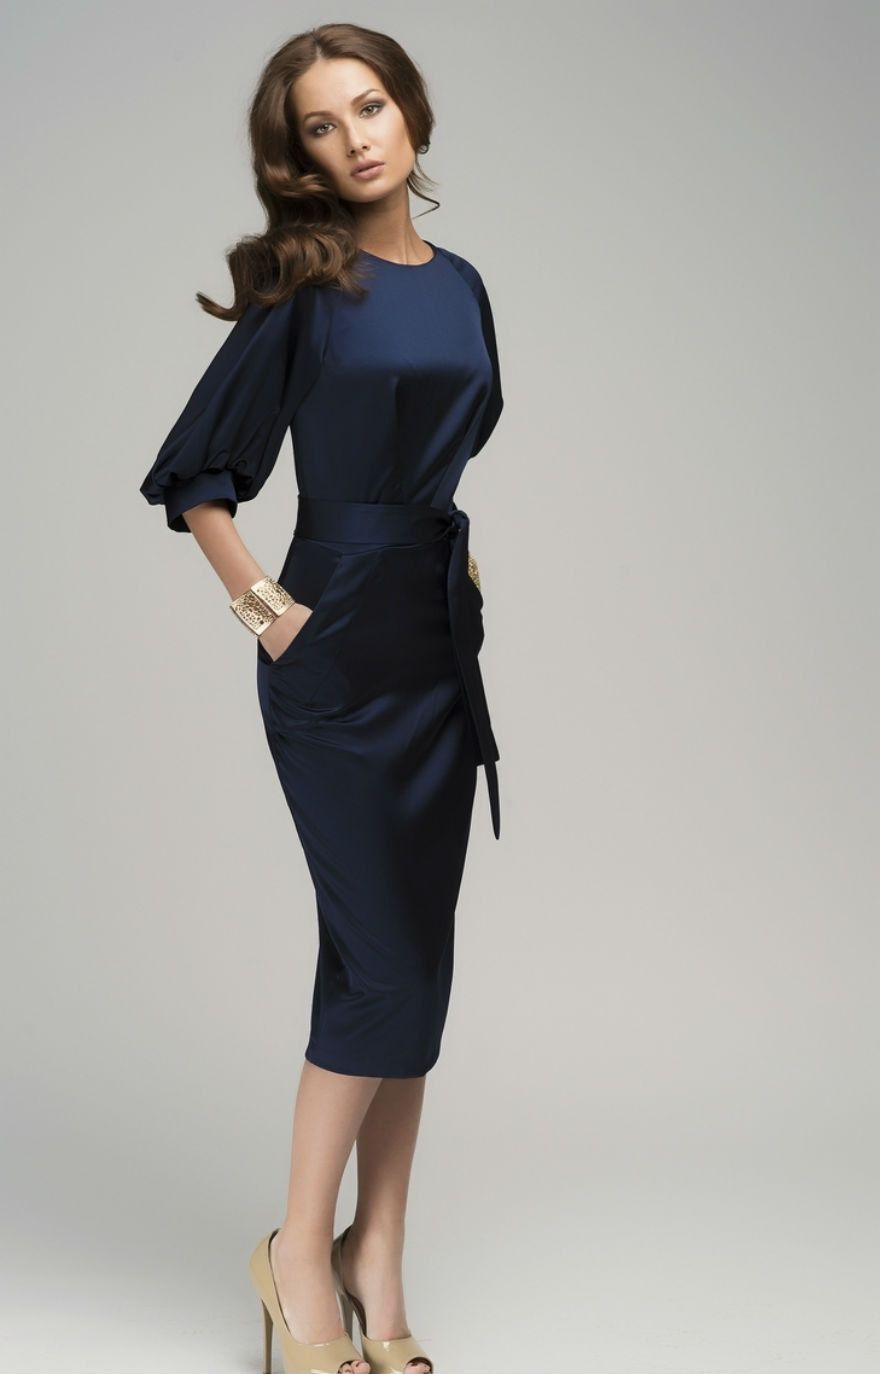 navy dresses for weddings Chic Navy Blue Maxi Dress Evening Retro Style Wedding Dress Pencil with Belt 60 00